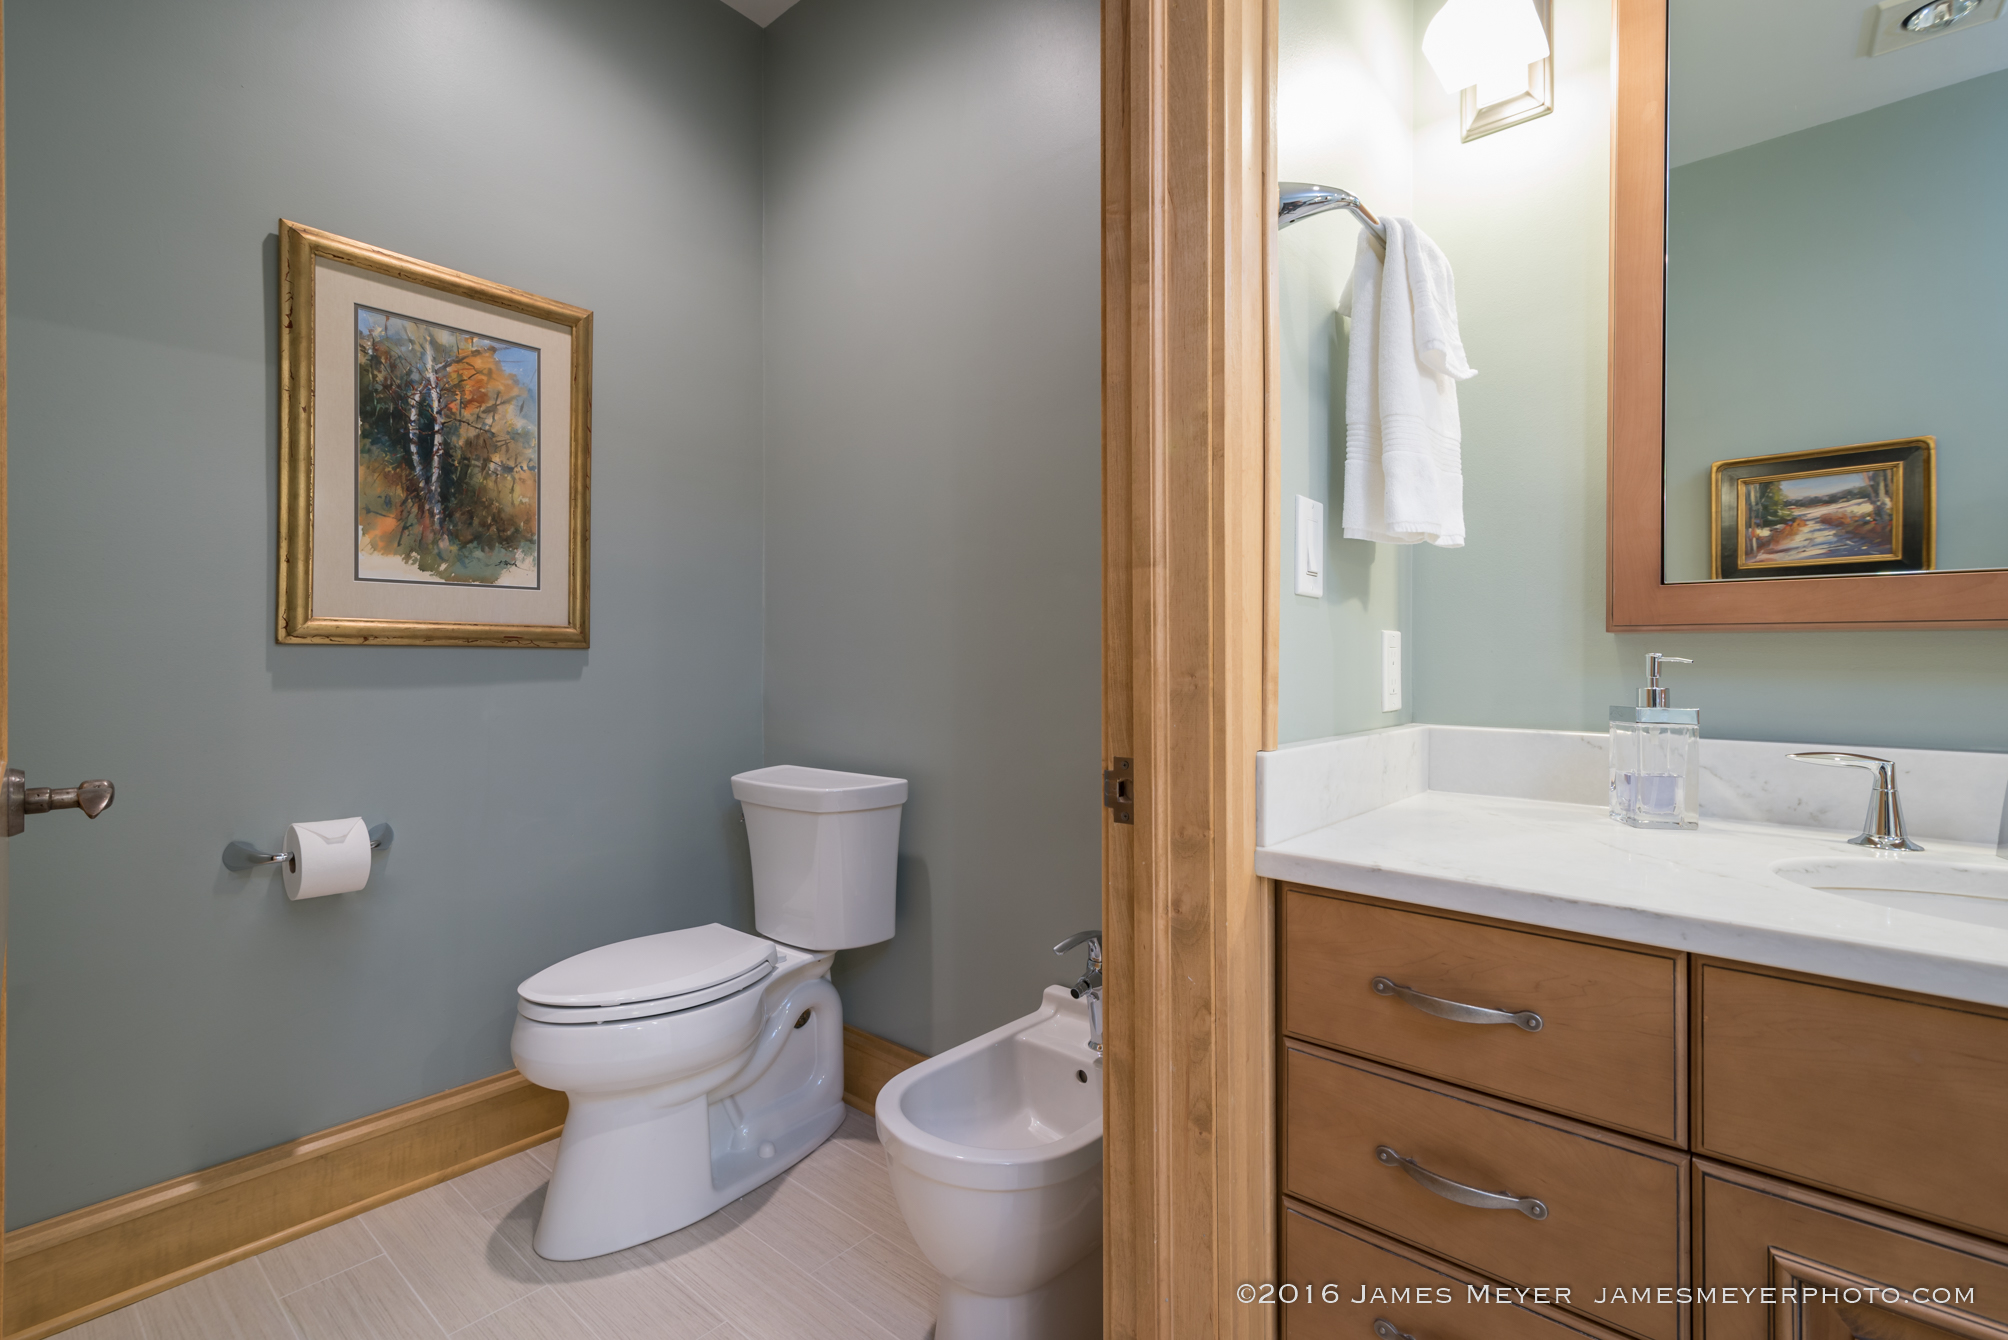 Waterfront condos bathroom remodel photographed by James Meyer Photography